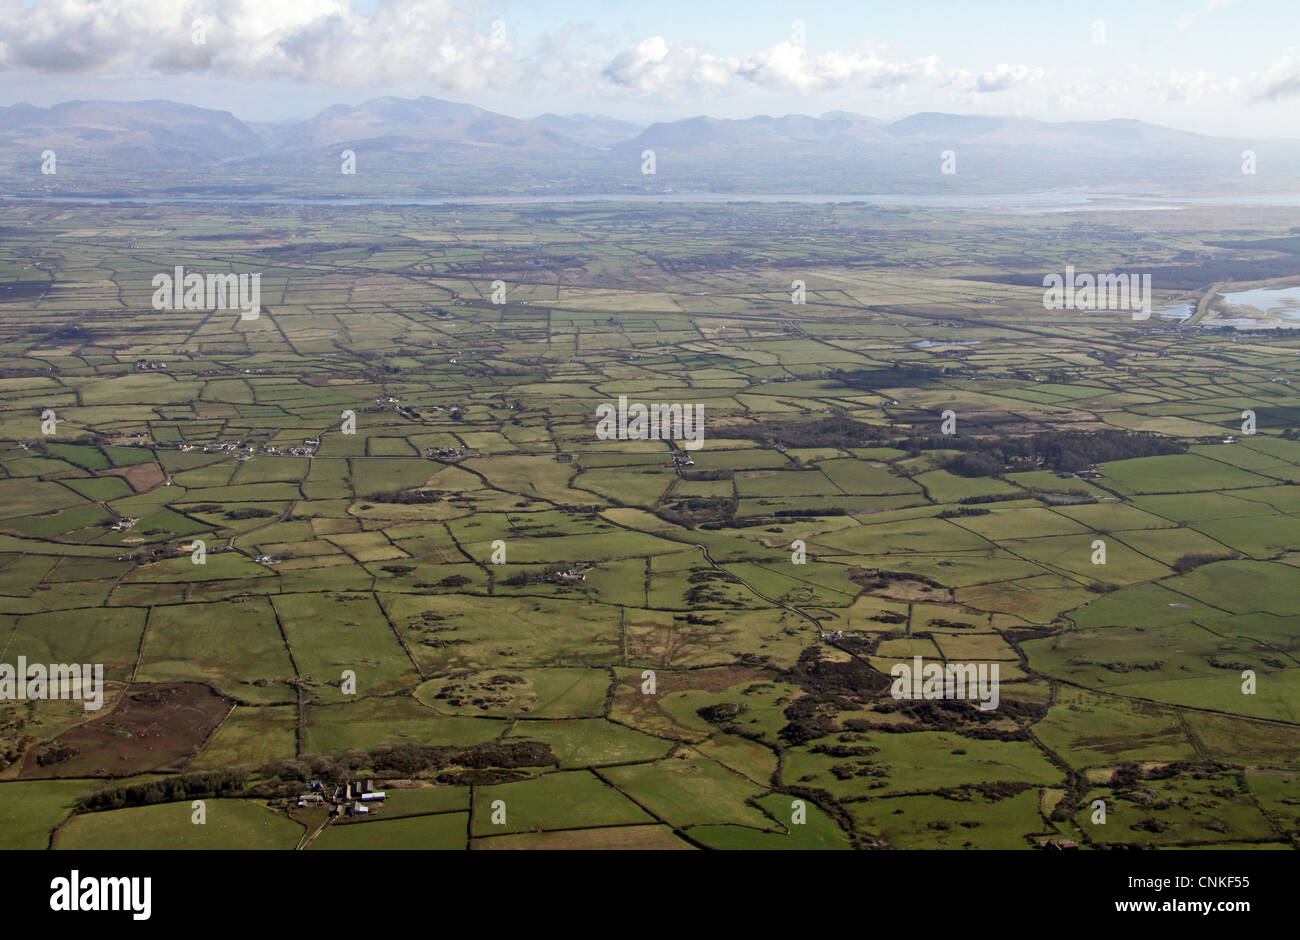 aerial view of the landscape of Anglesey looking east towards Snowdonia - Stock Image